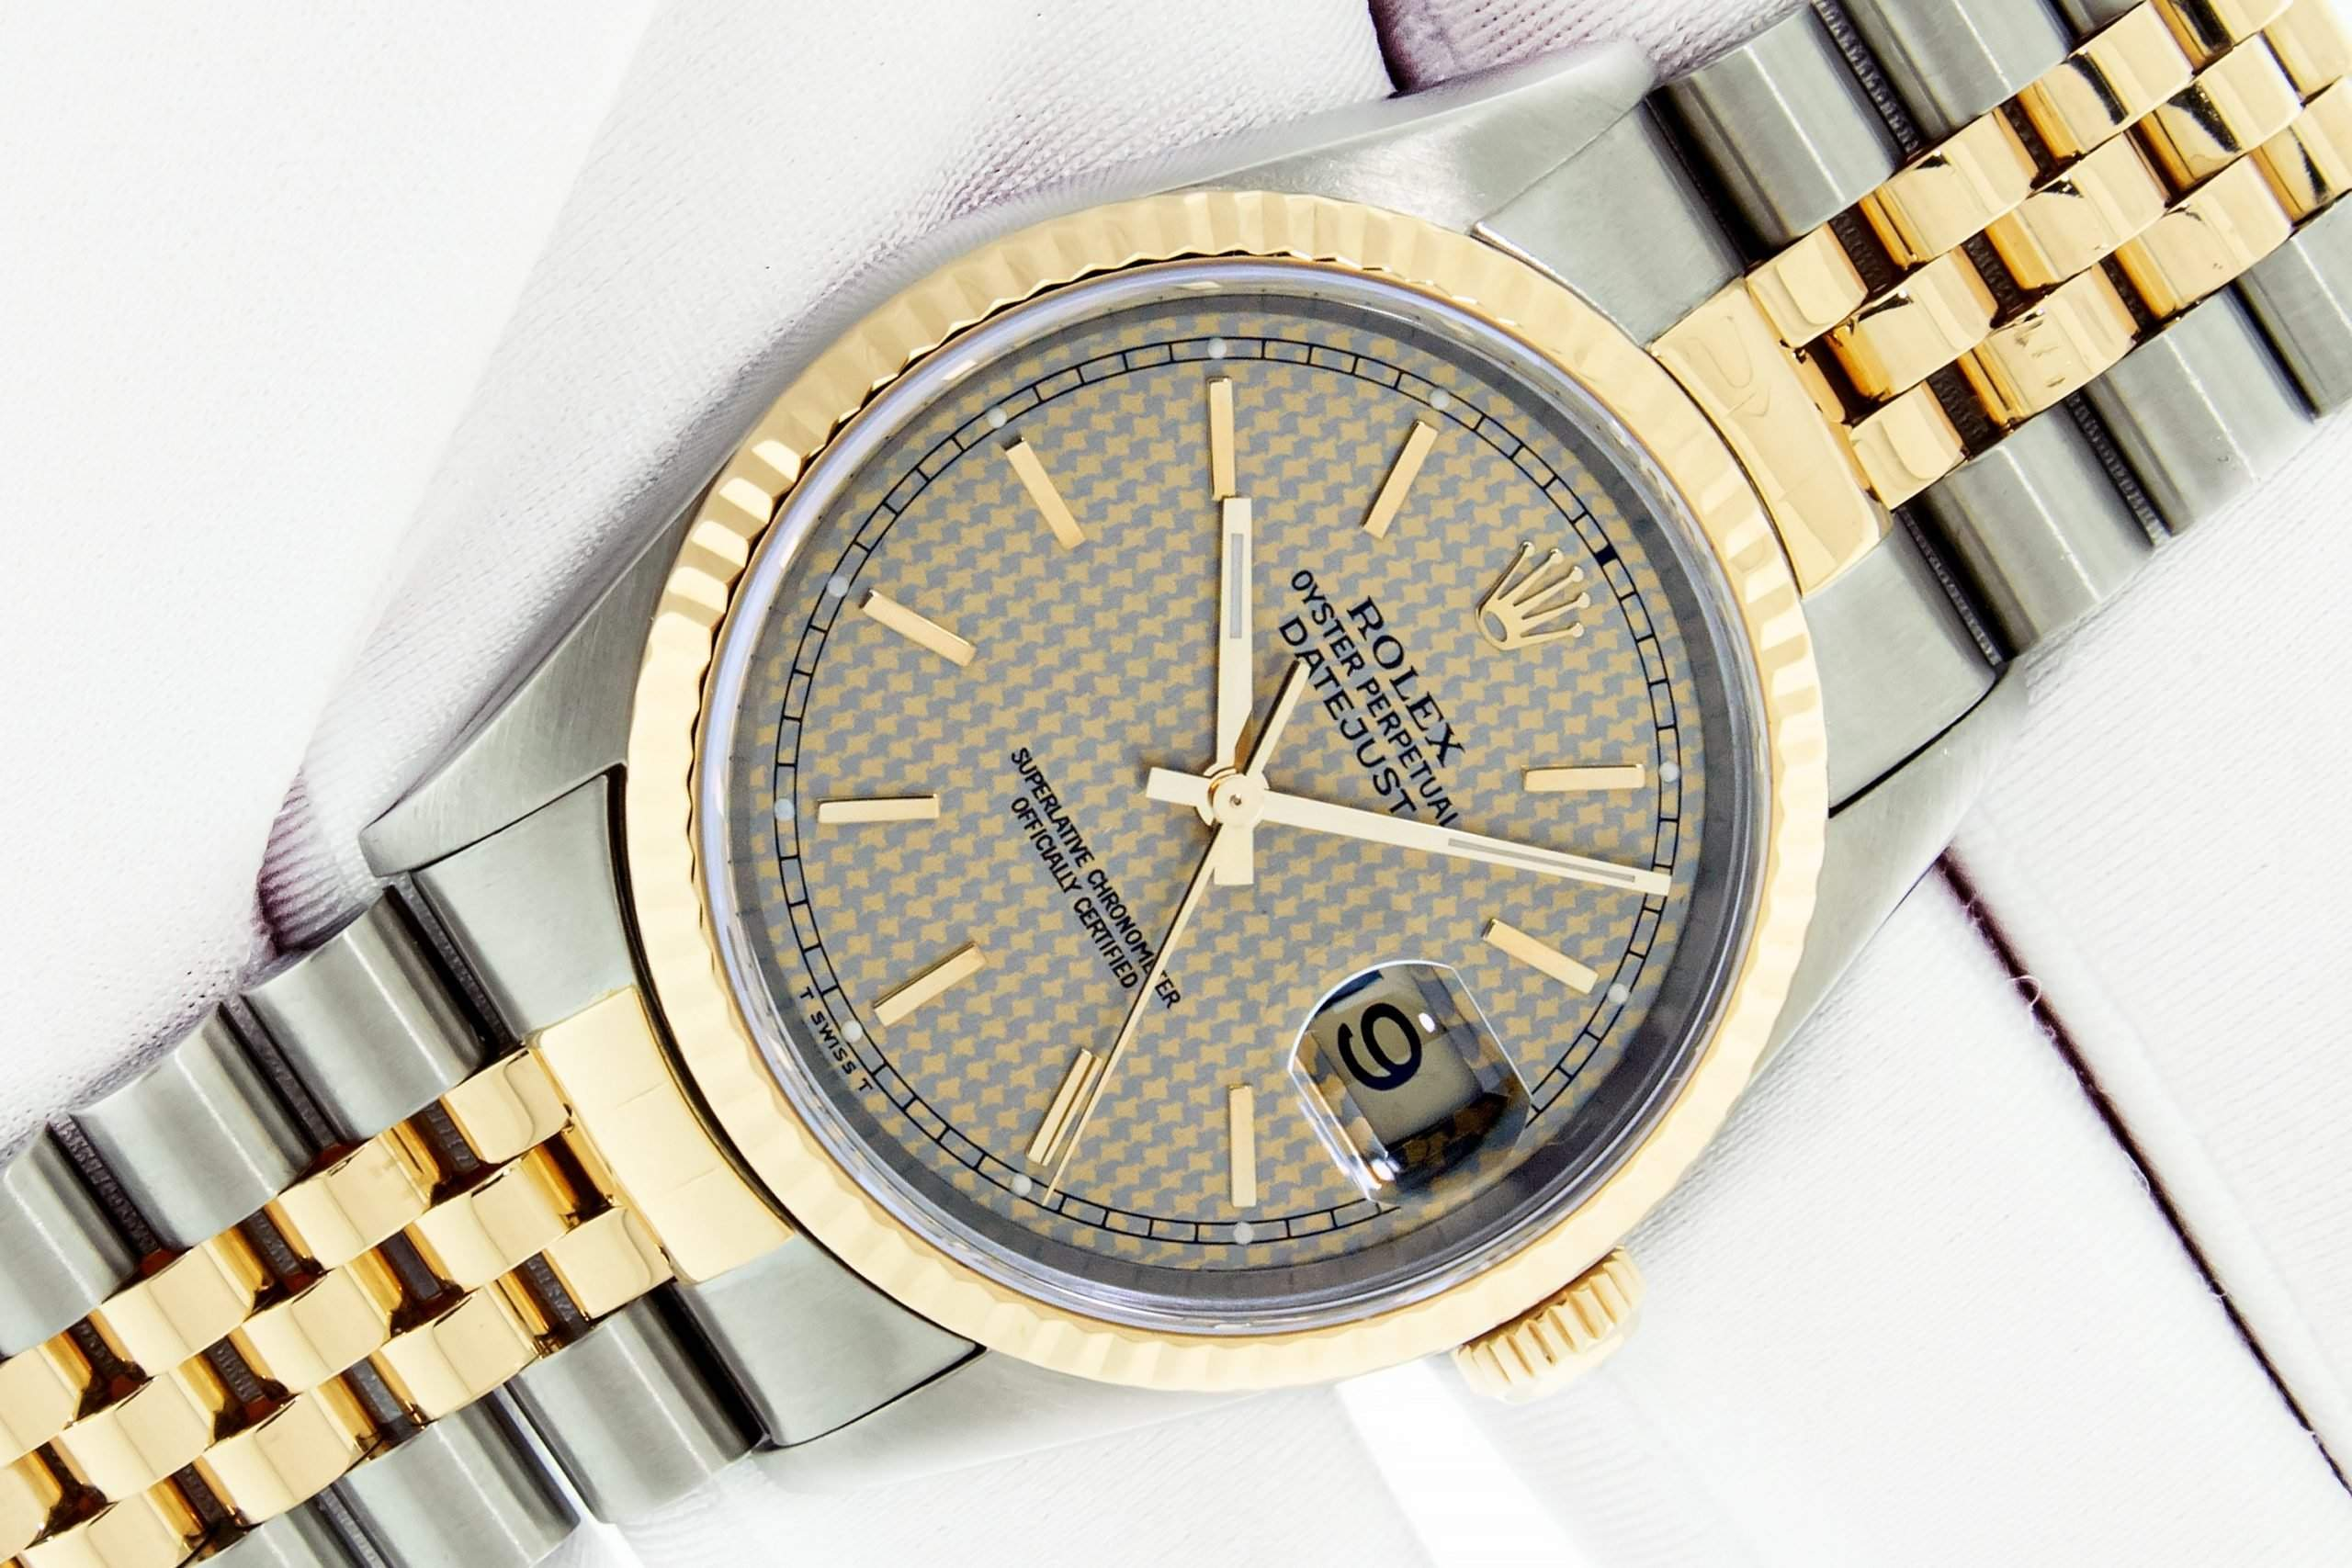 Rolex Datejust 16013: the perfect watch for a Wall Street hotshot